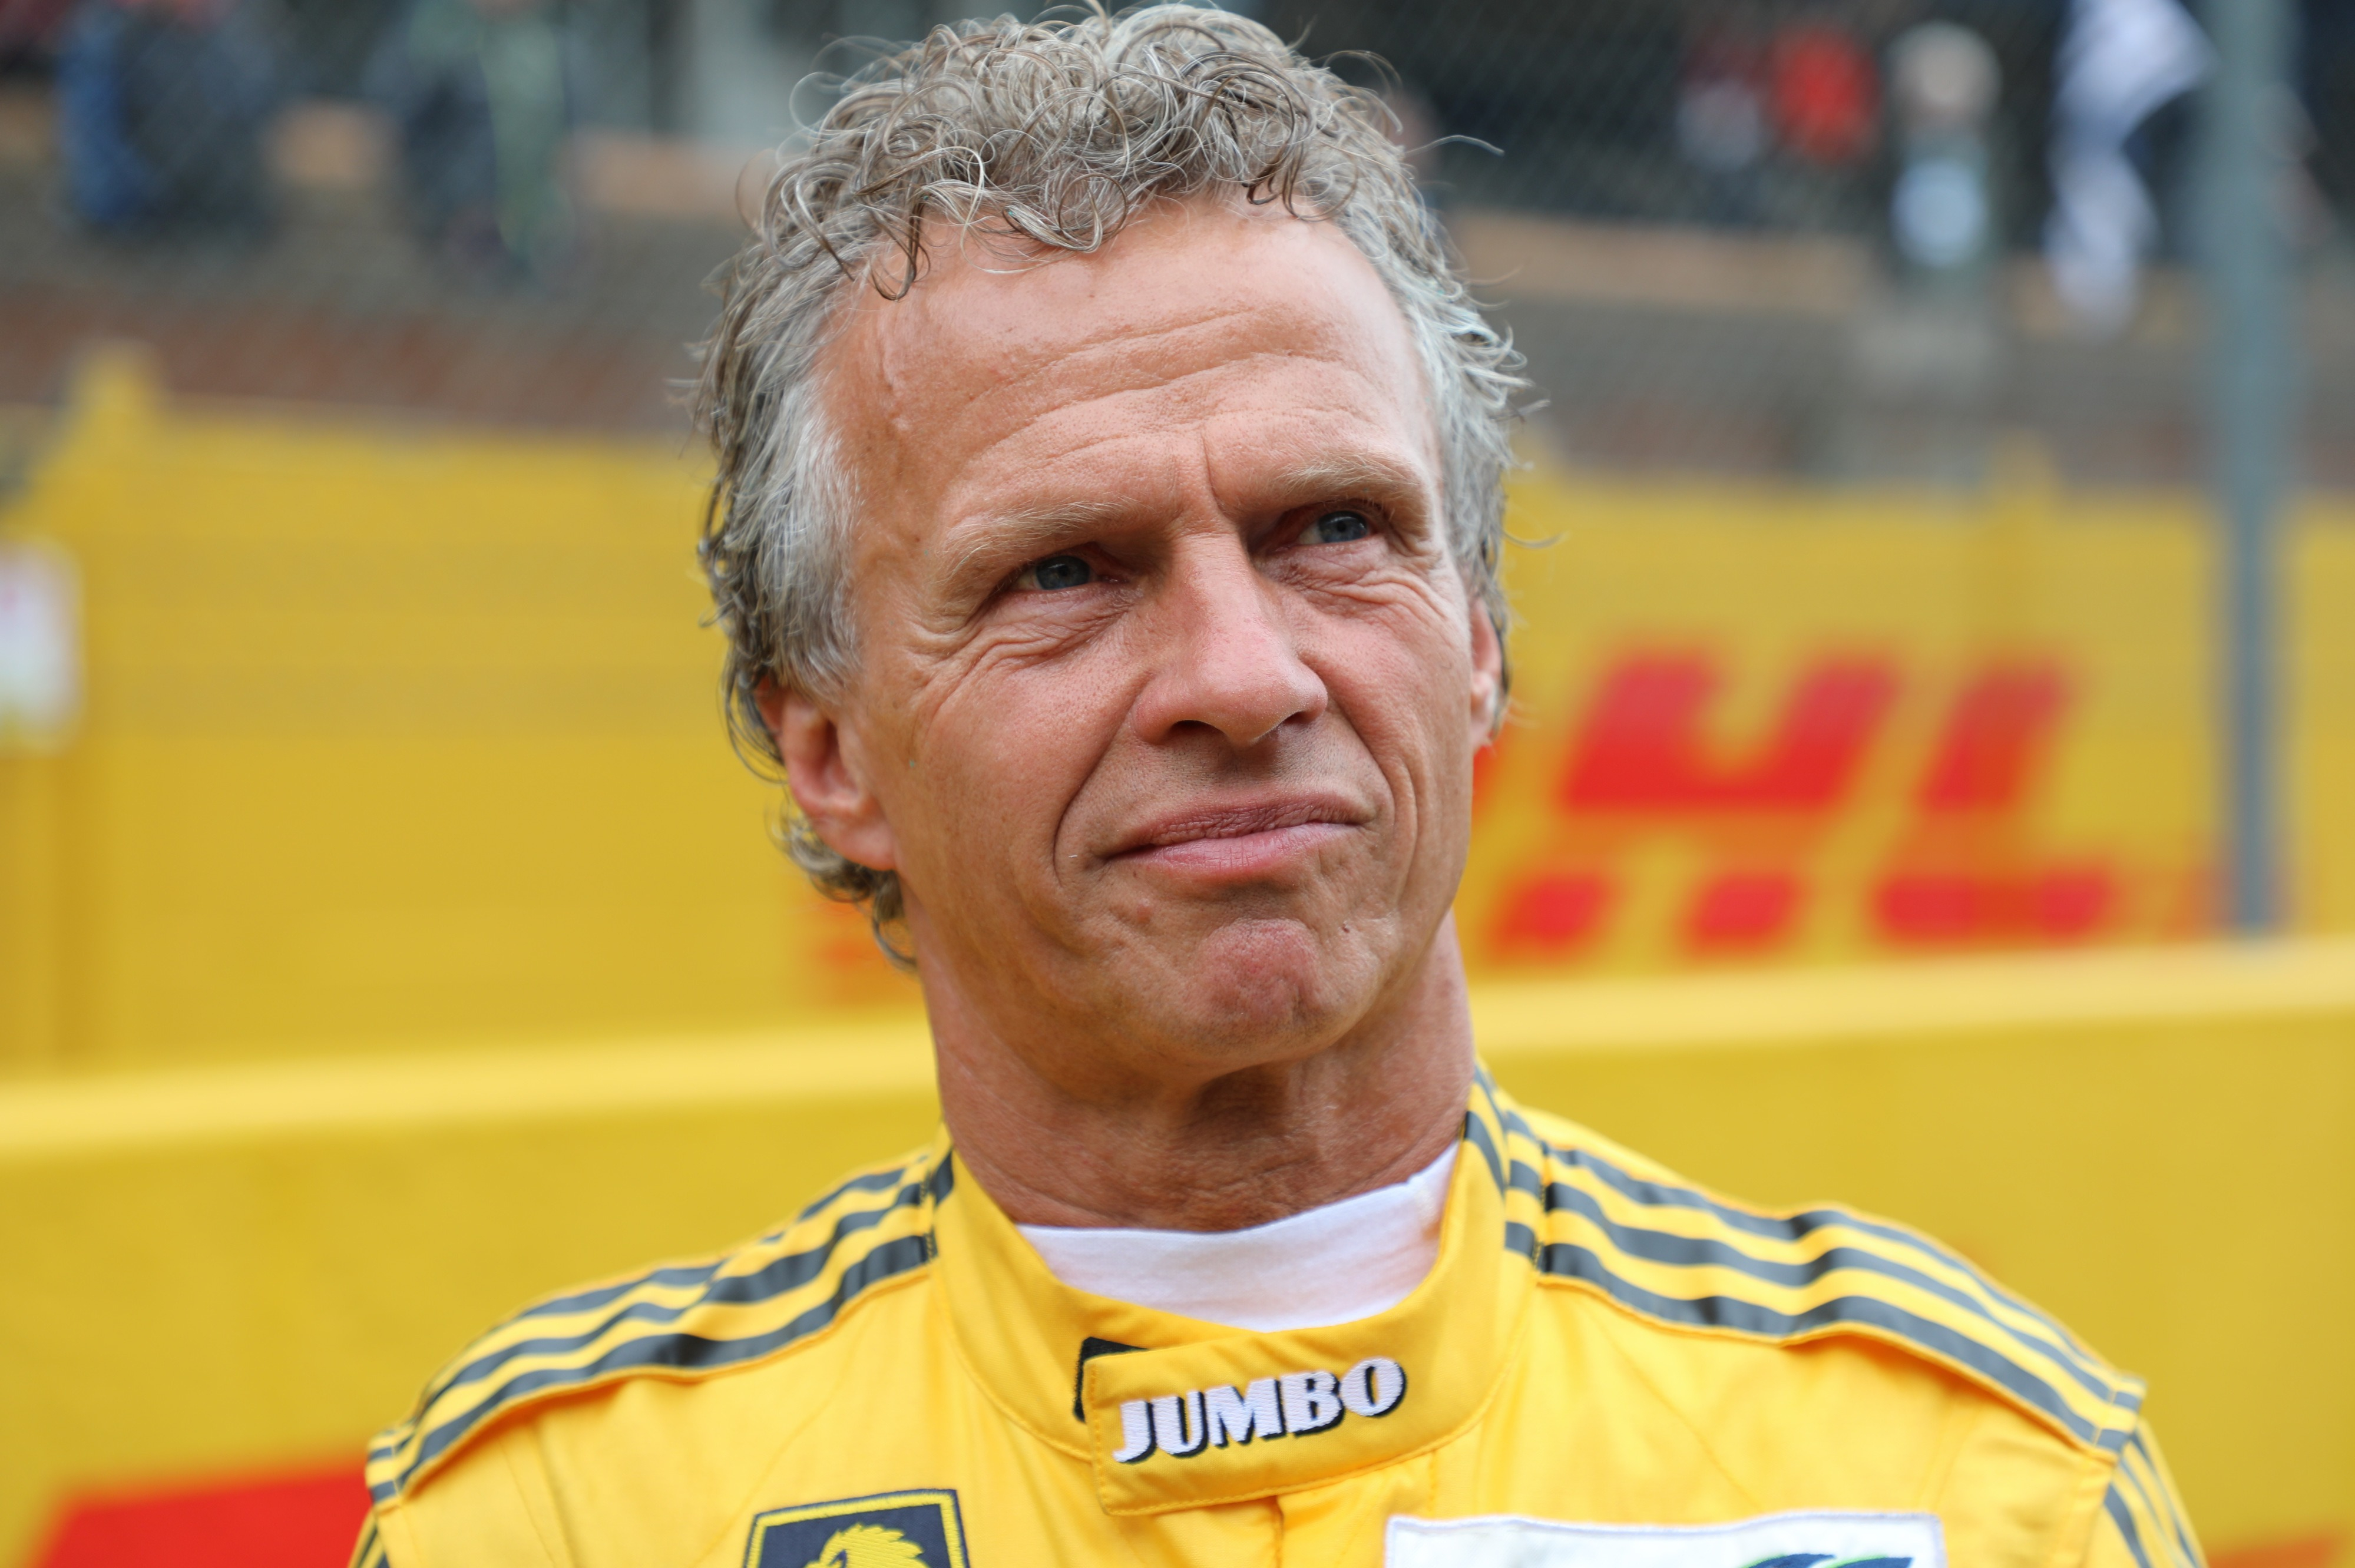 Lammers made final Le Mans start in 2018 aged 62